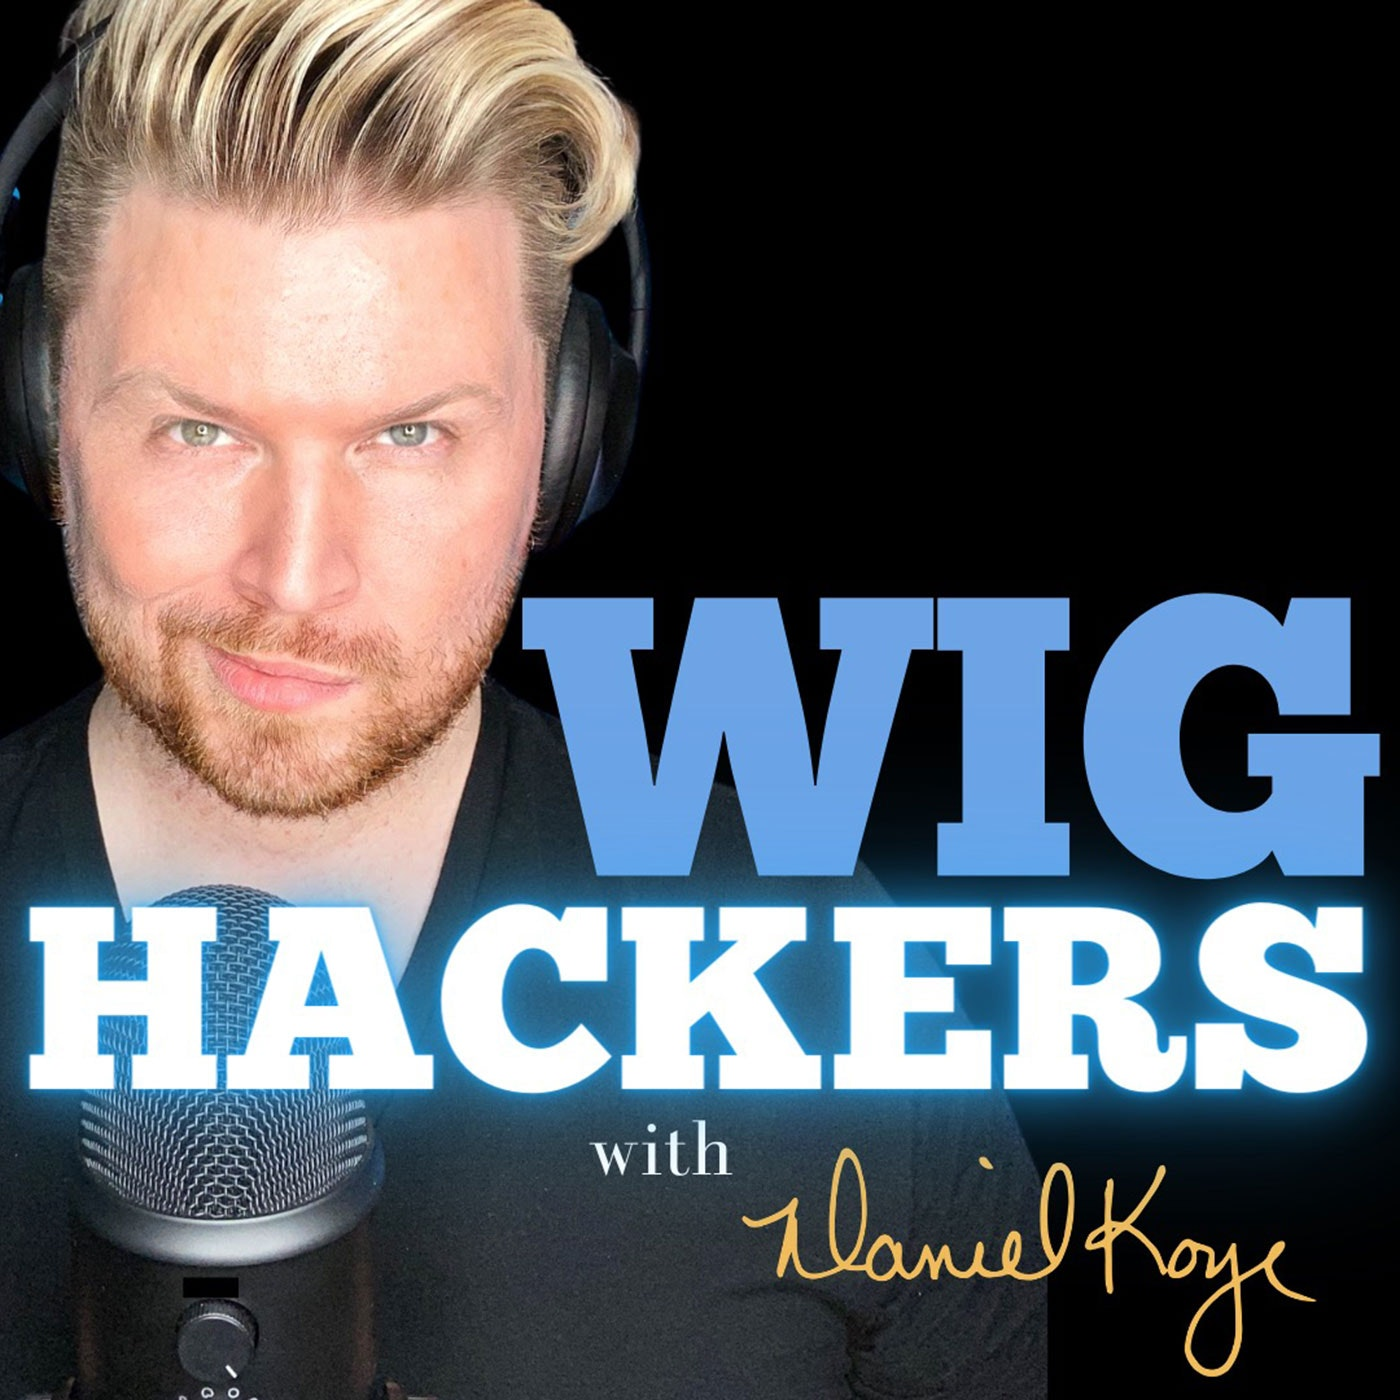 Wighackers with Daniel Koye